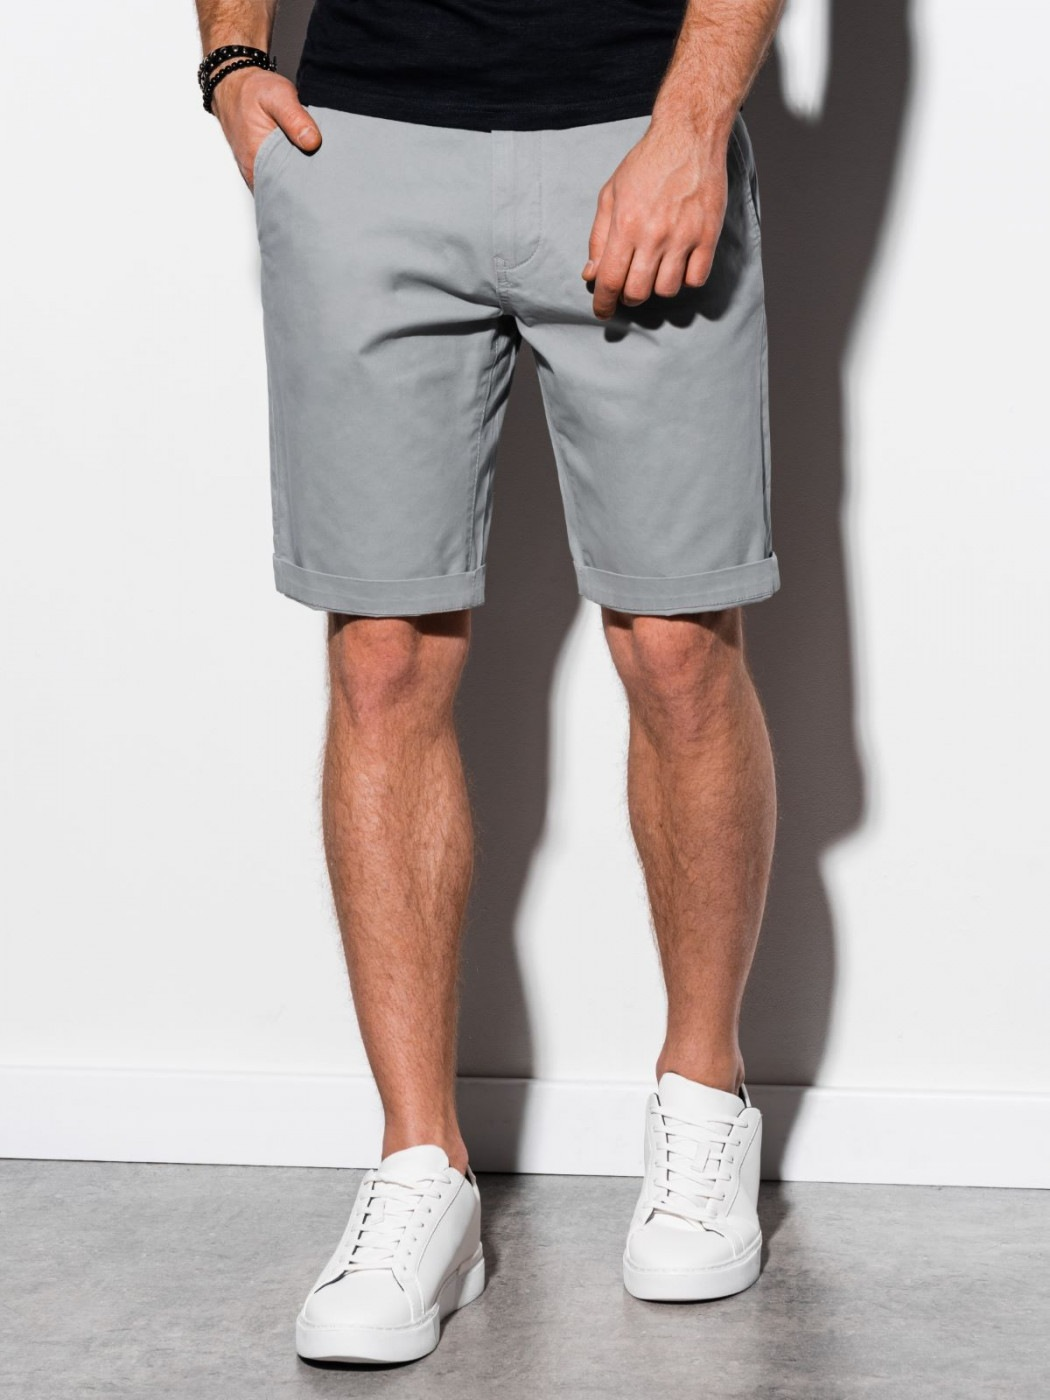 Ombre Clothing Men's casual shorts W243